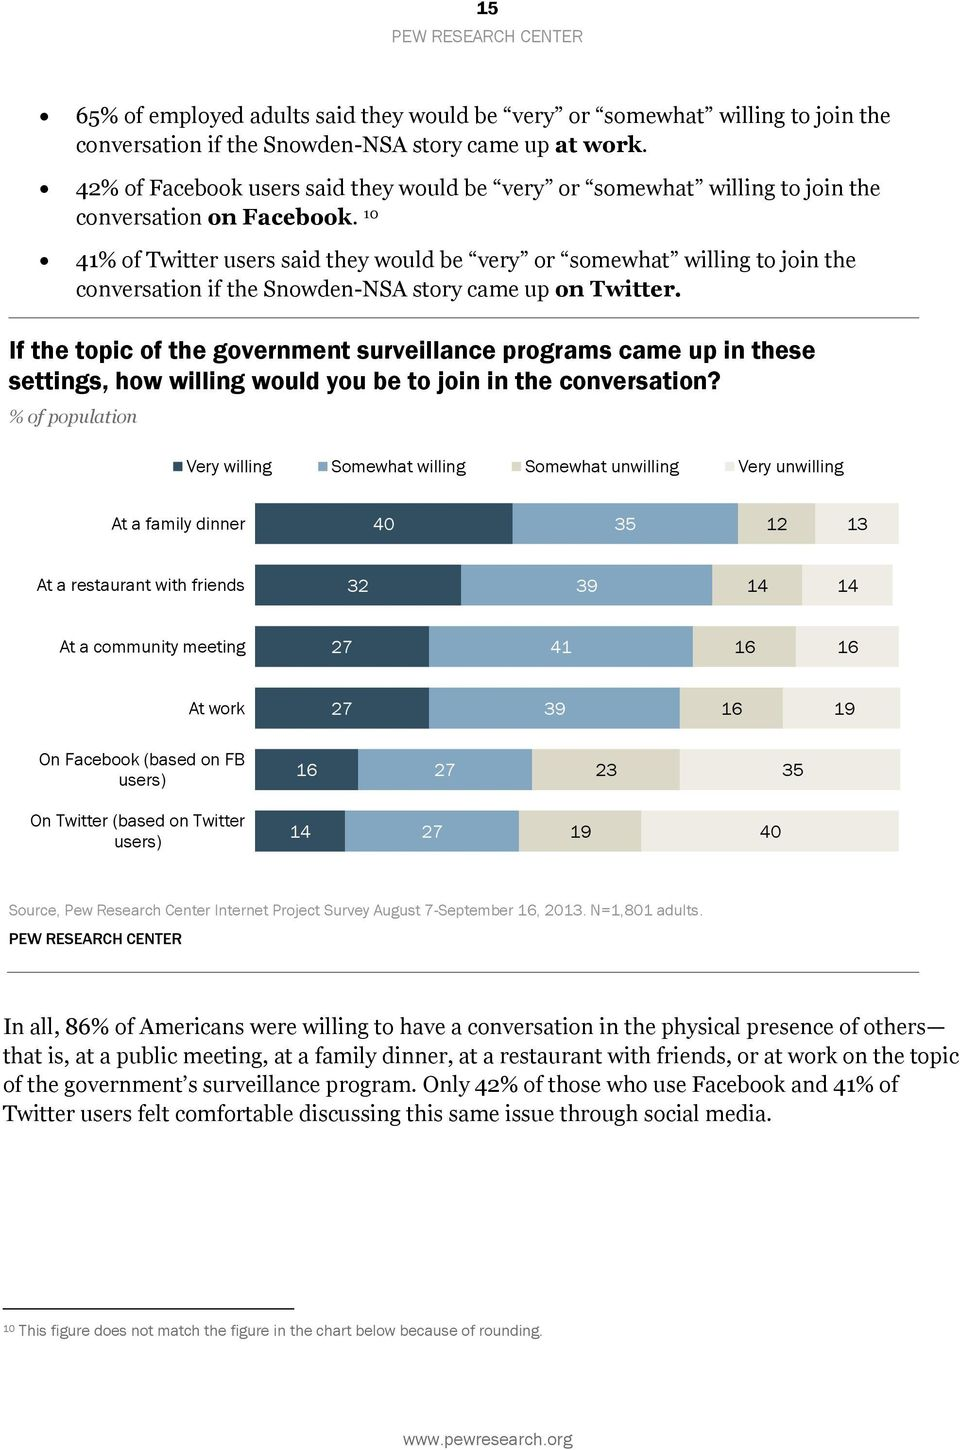 10 41% of Twitter users said they would be very or somewhat willing to join the conversation if the Snowden-NSA story came up on Twitter.